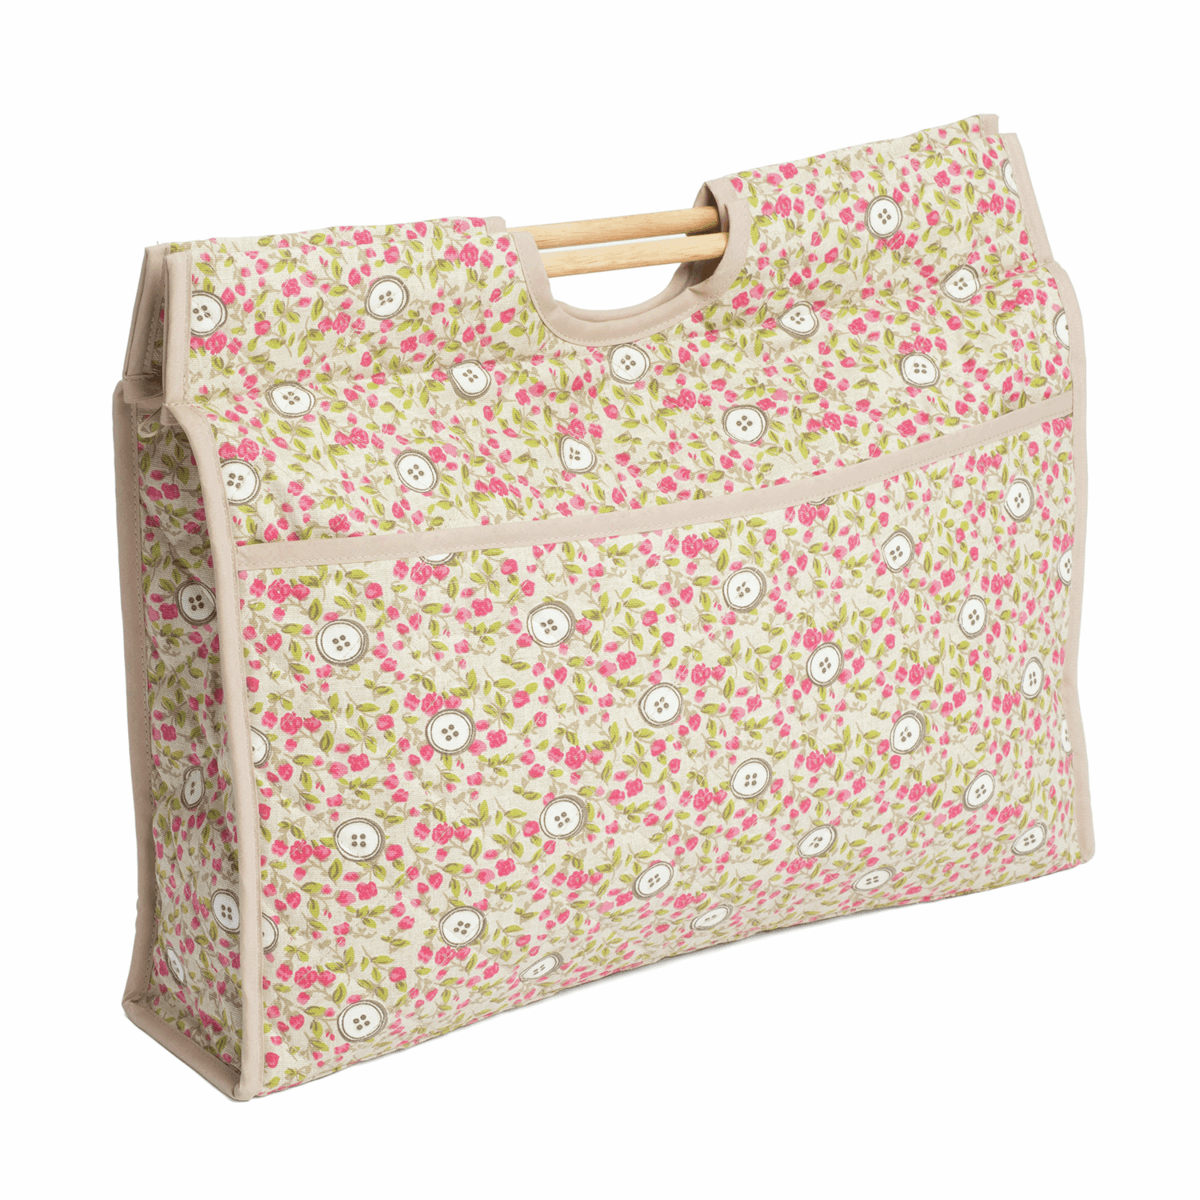 Picture of Craft Bag with Wooden Handles: Floral Button